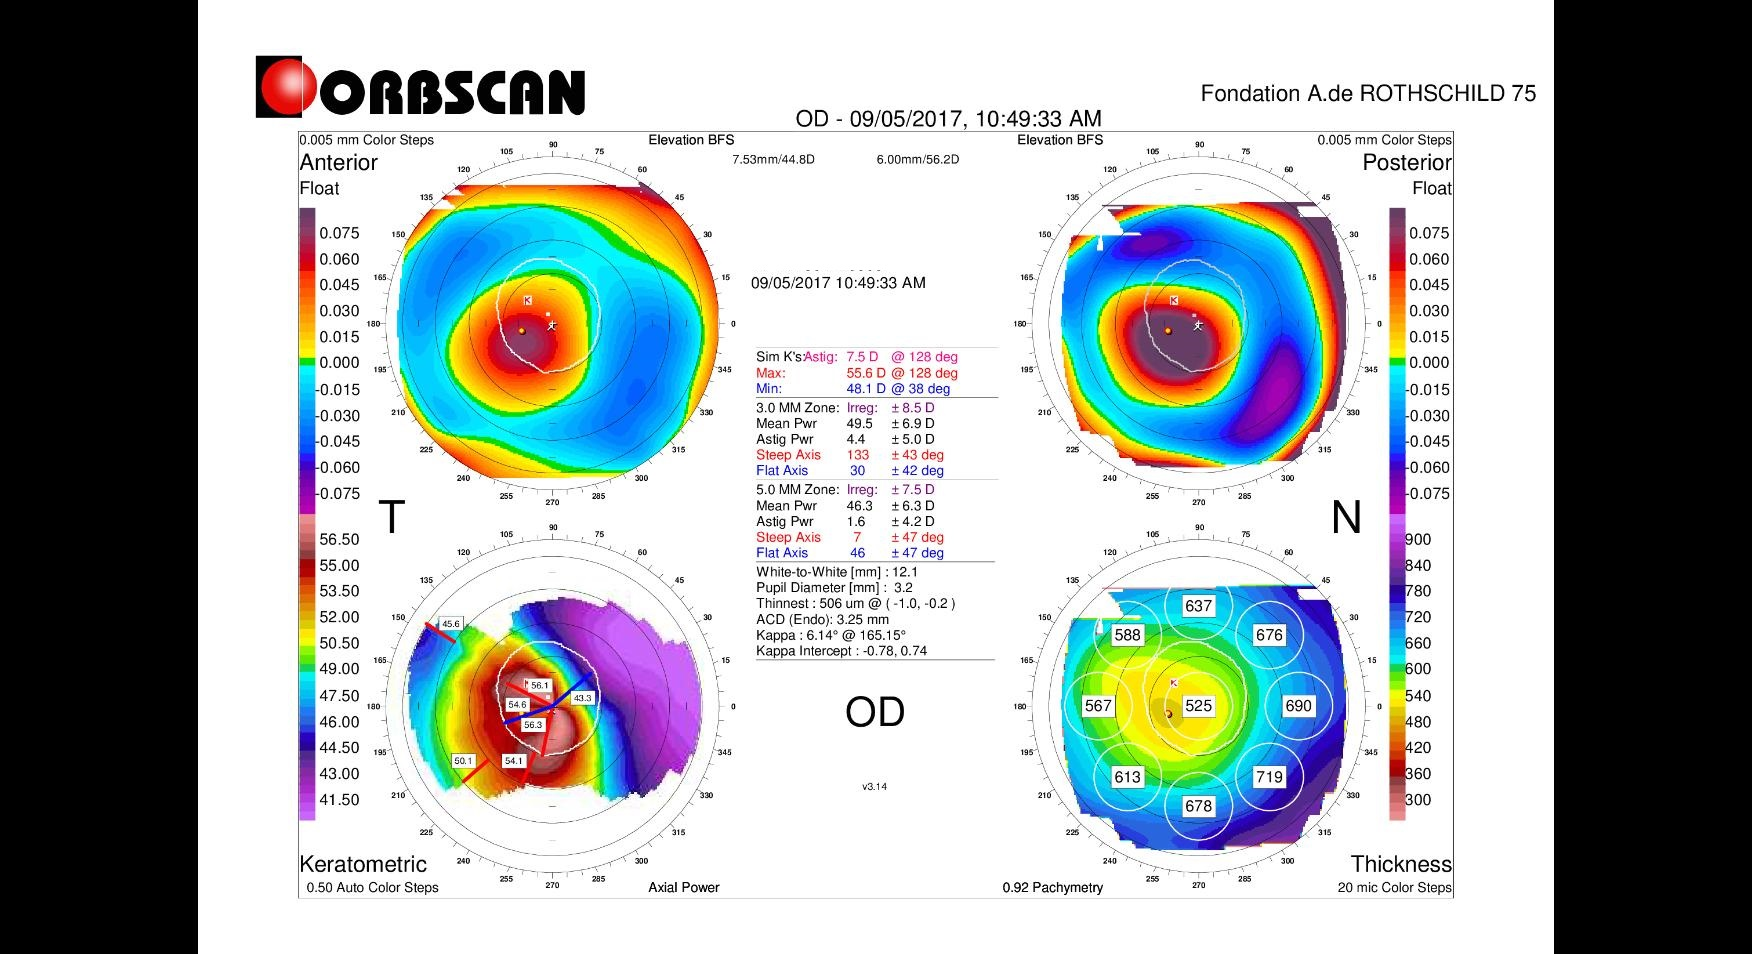 orbscan map of an eye with keratoconus